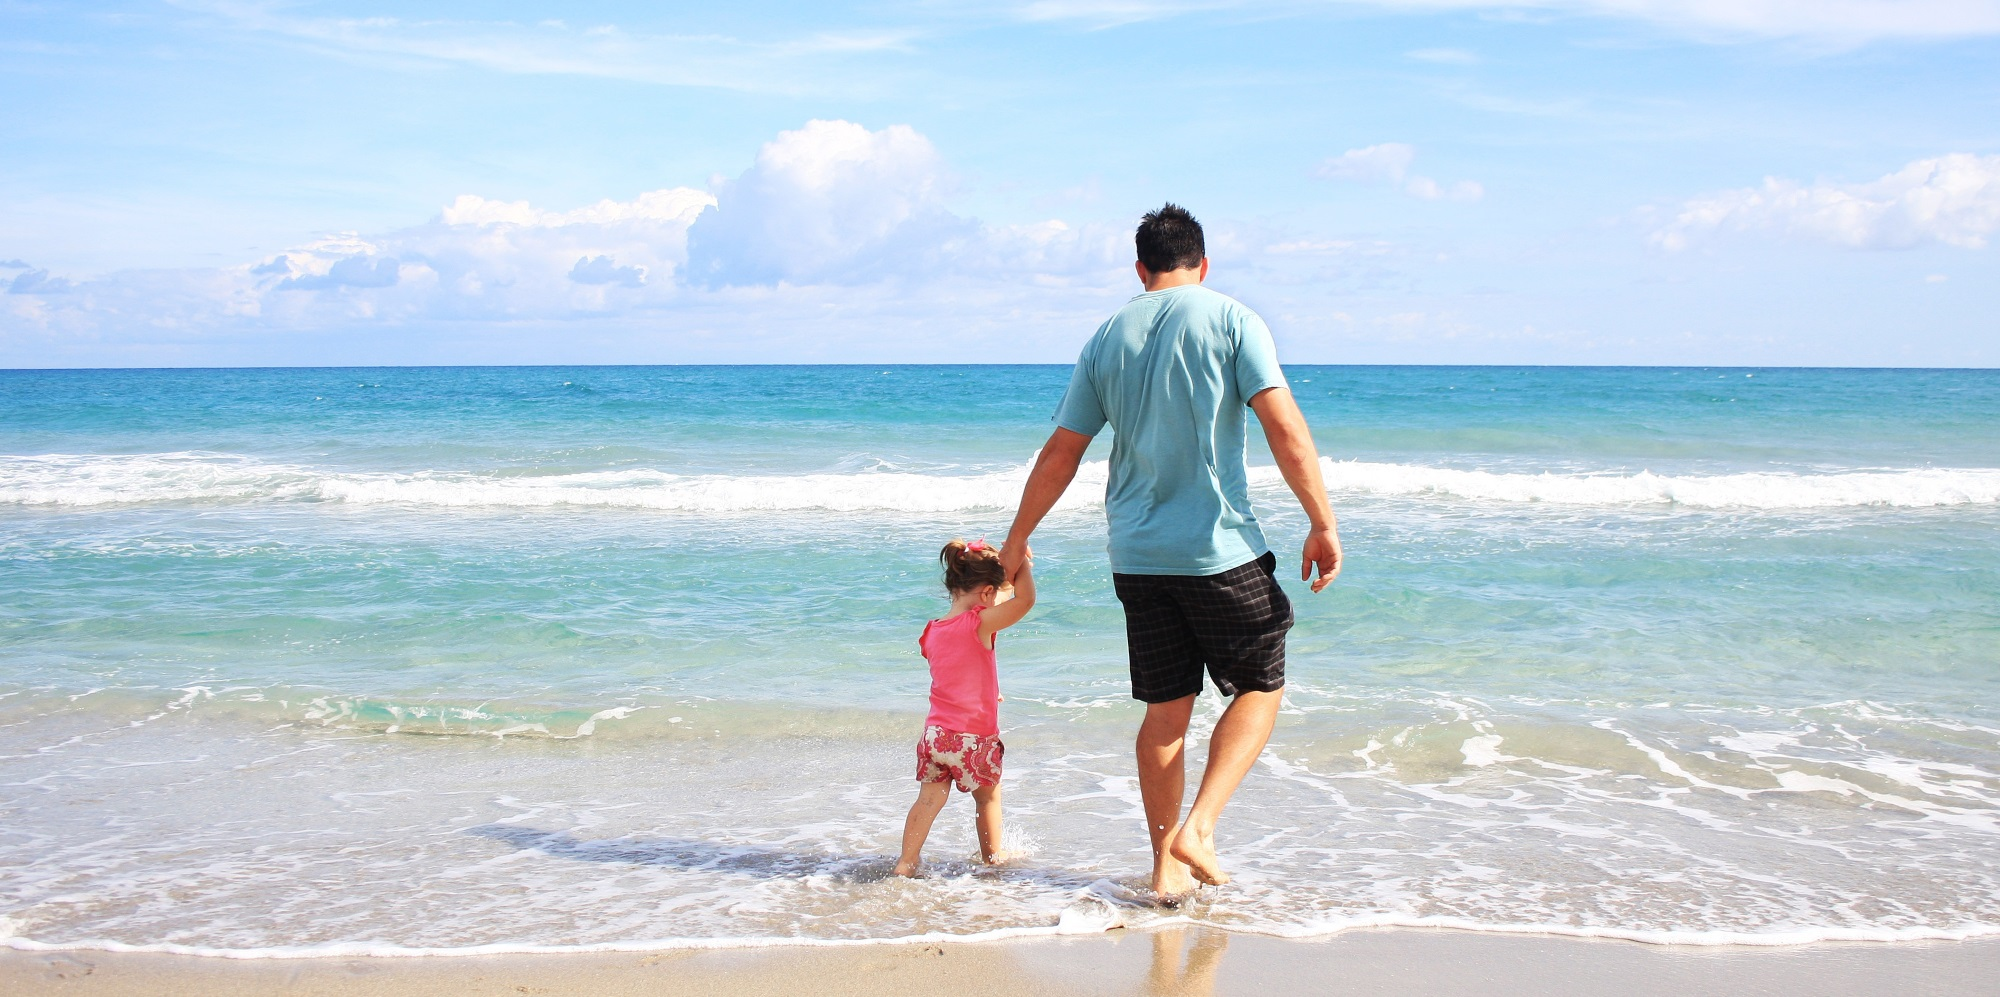 Man Living Off Dividends from High Equity Yield Portfolio Walking with Daughter on Beach